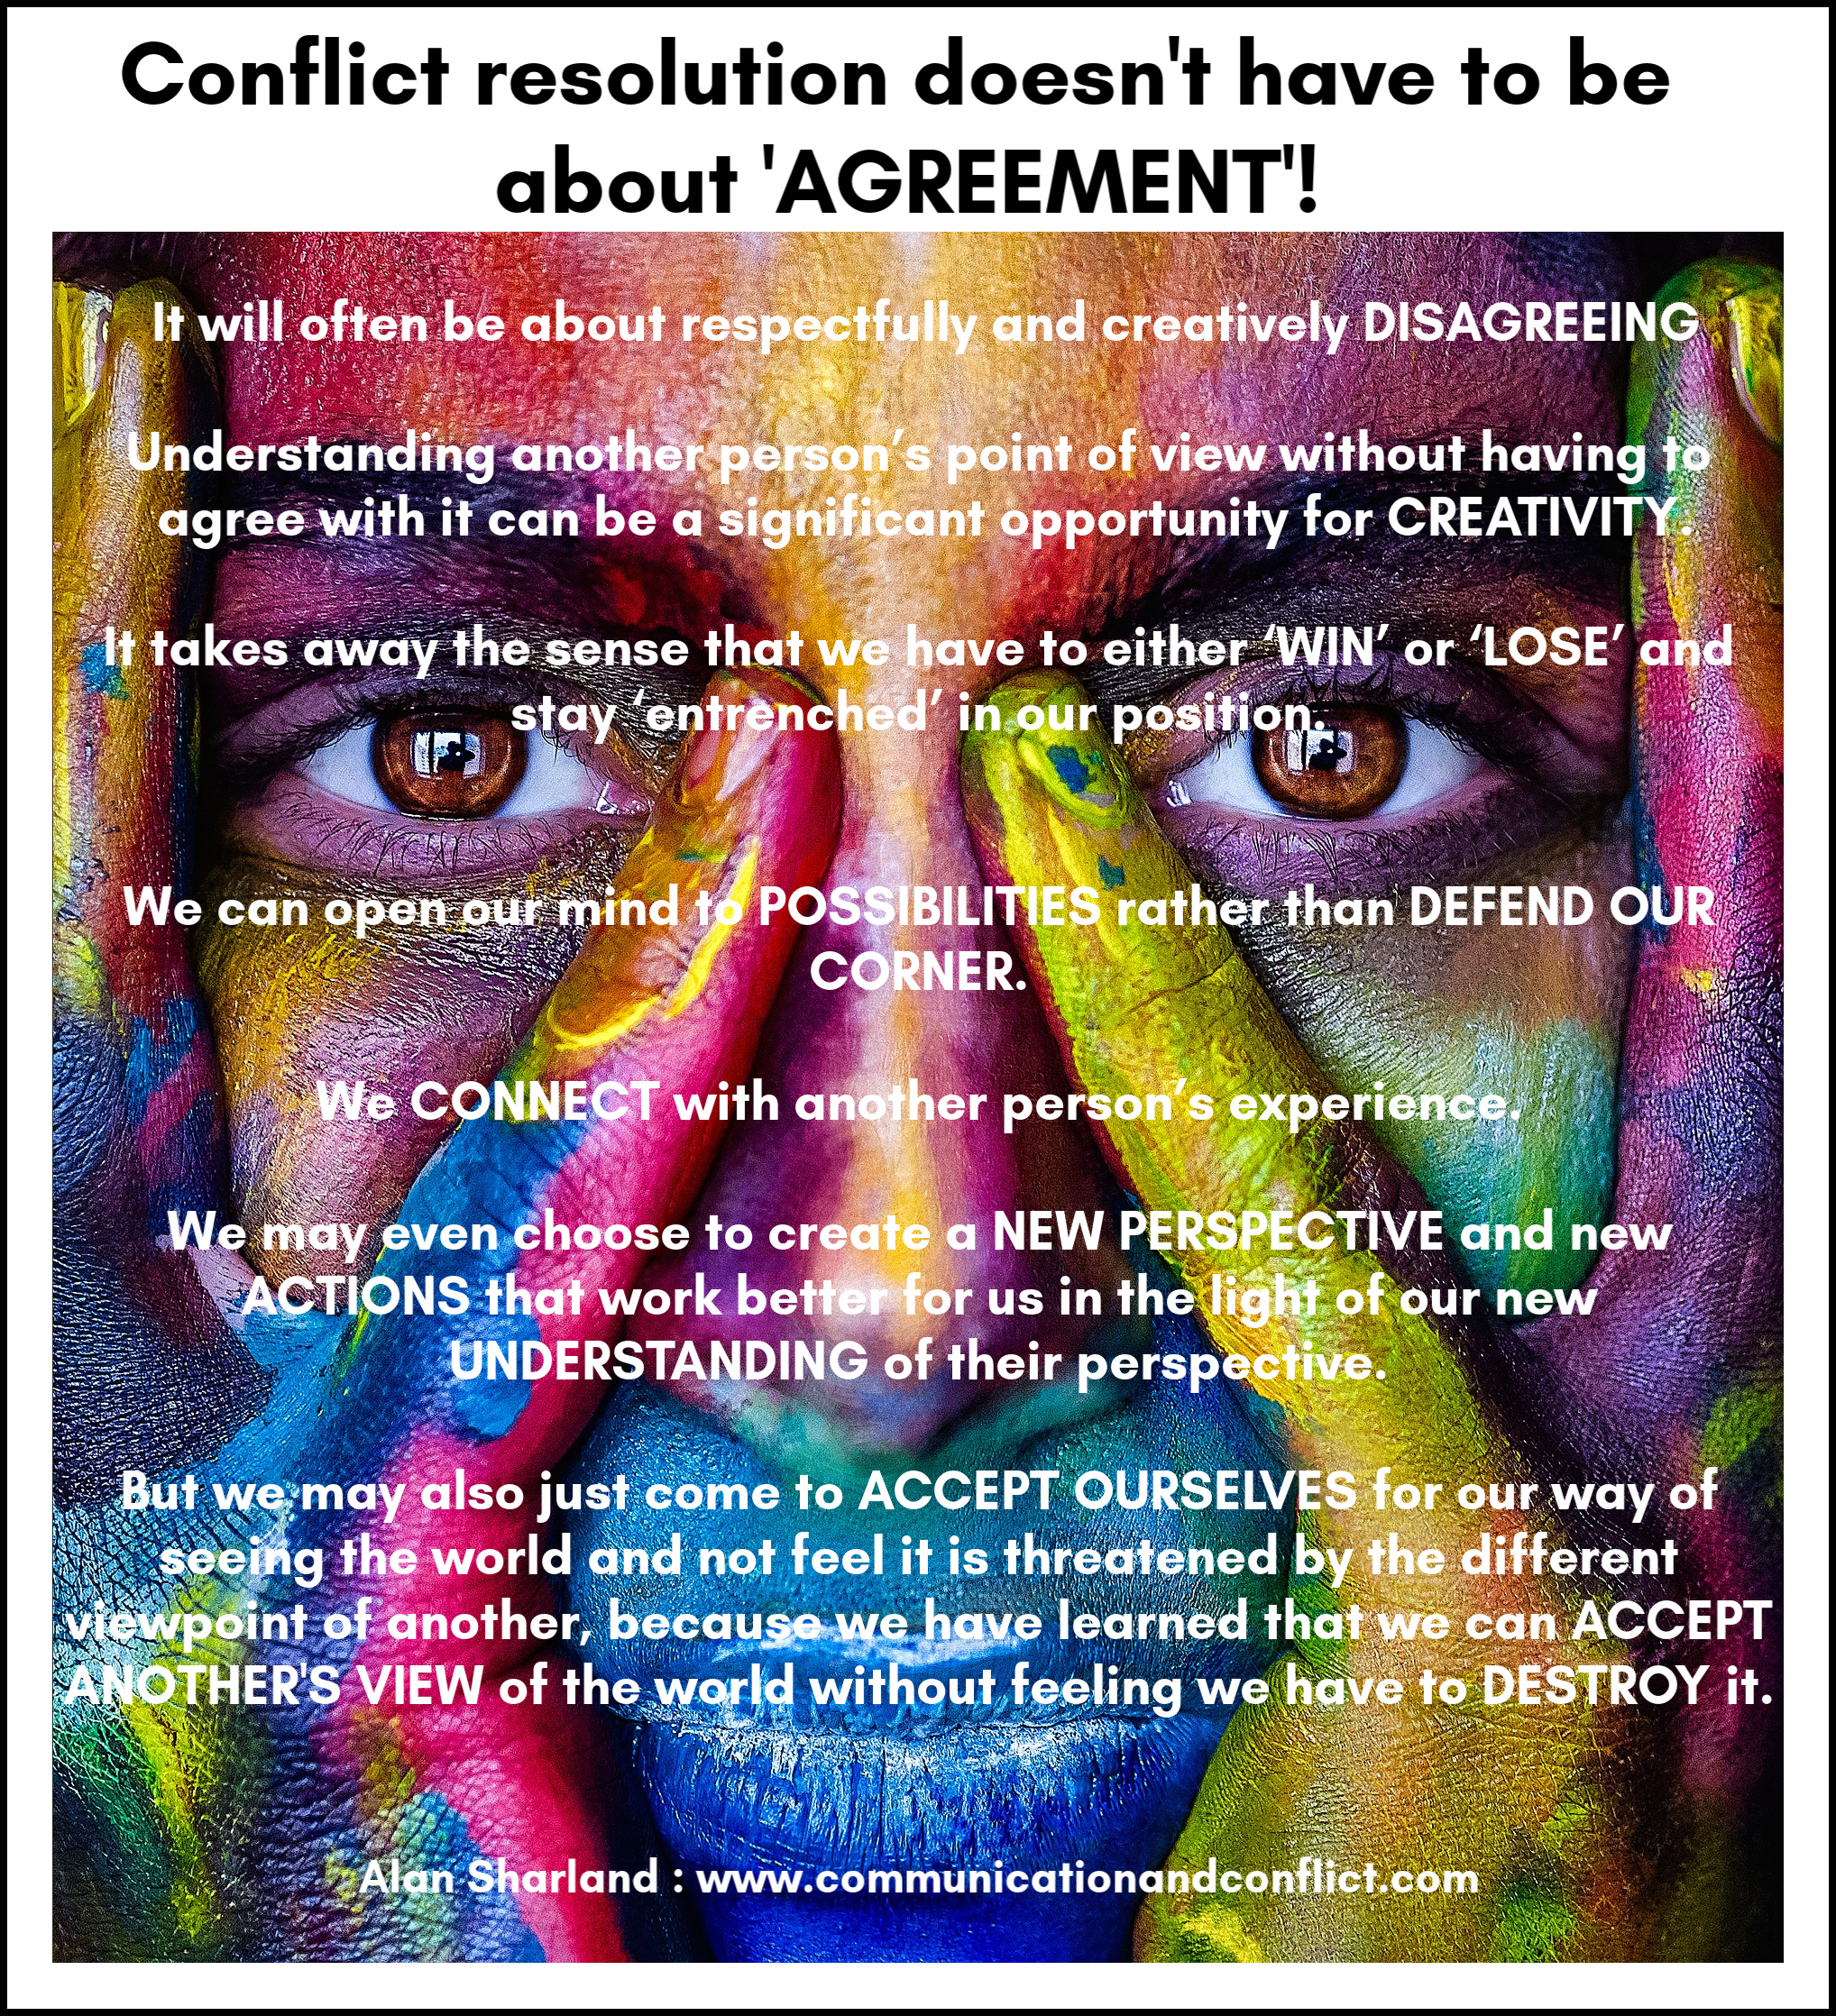 Conflict Resolution Doesn't Have To Be About Agreement!